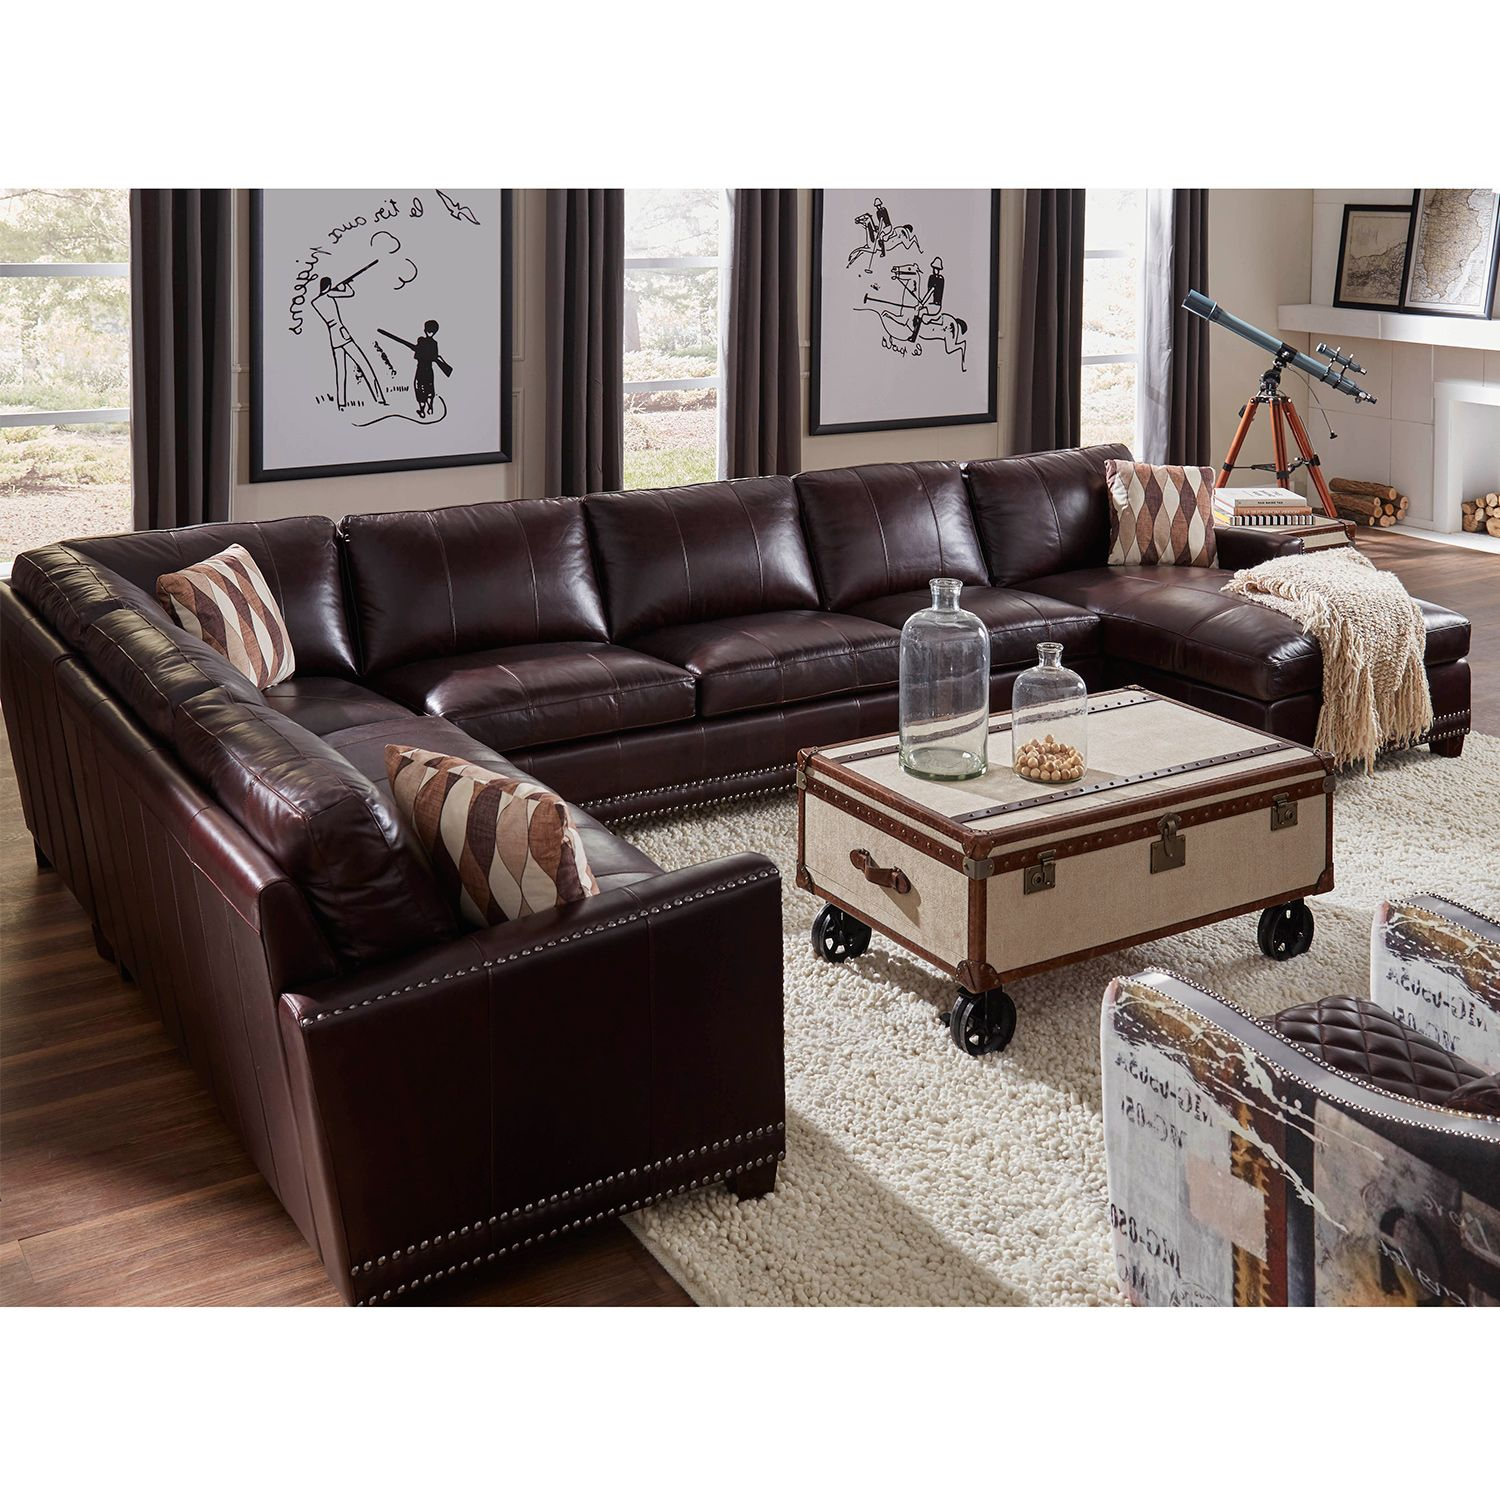 Share And Save 5 Off Any Order Over 99 Excludes A Few Products Lazzaro Furniture Bozeman Right Side Facing Furniture Sectional Sofa Modern Sofa Sectional